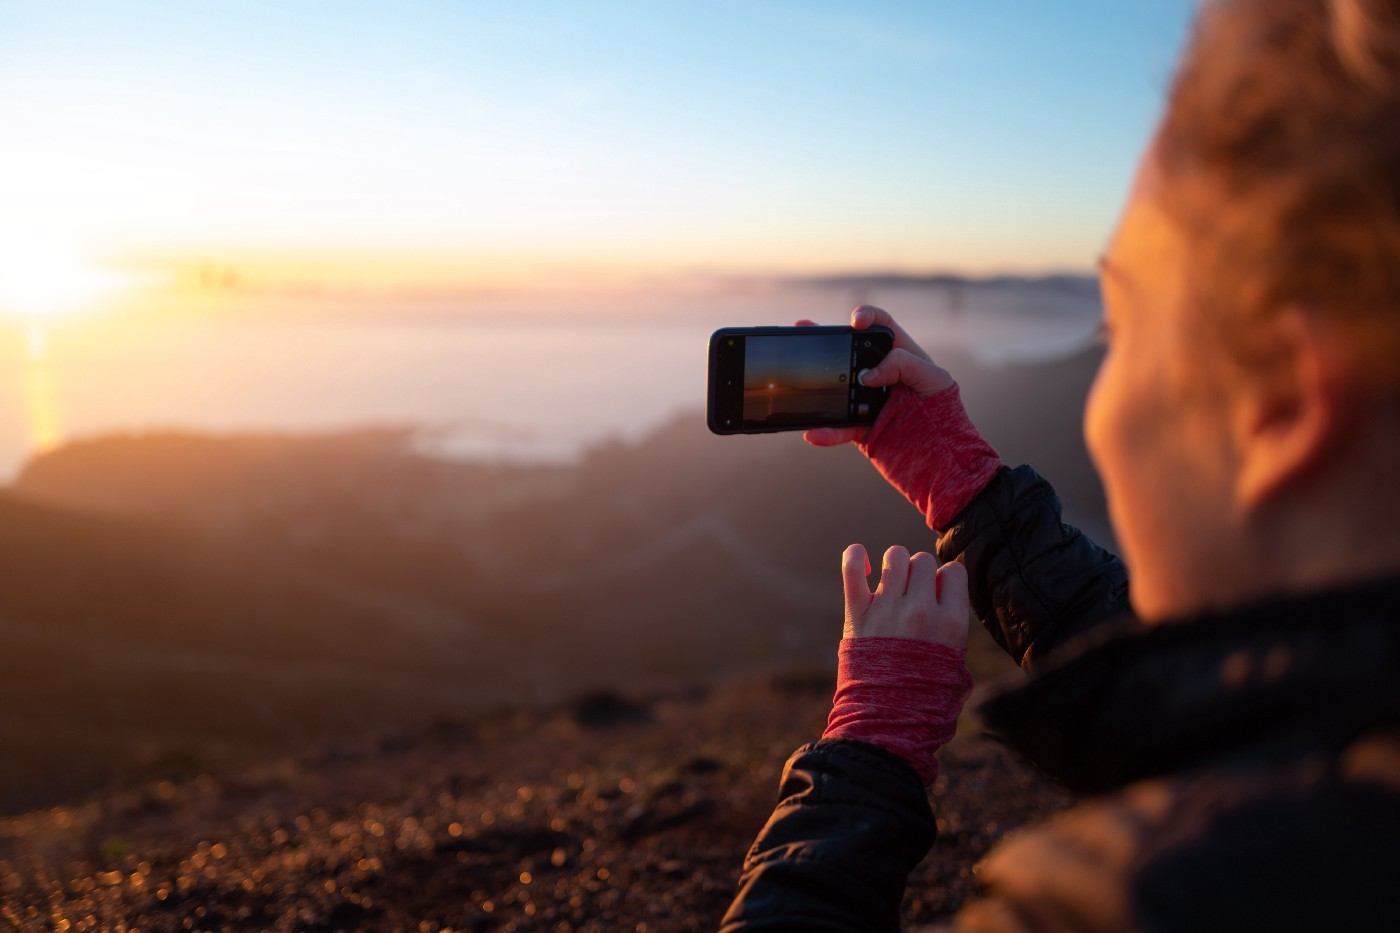 A woman taking a photograph with her smartphone